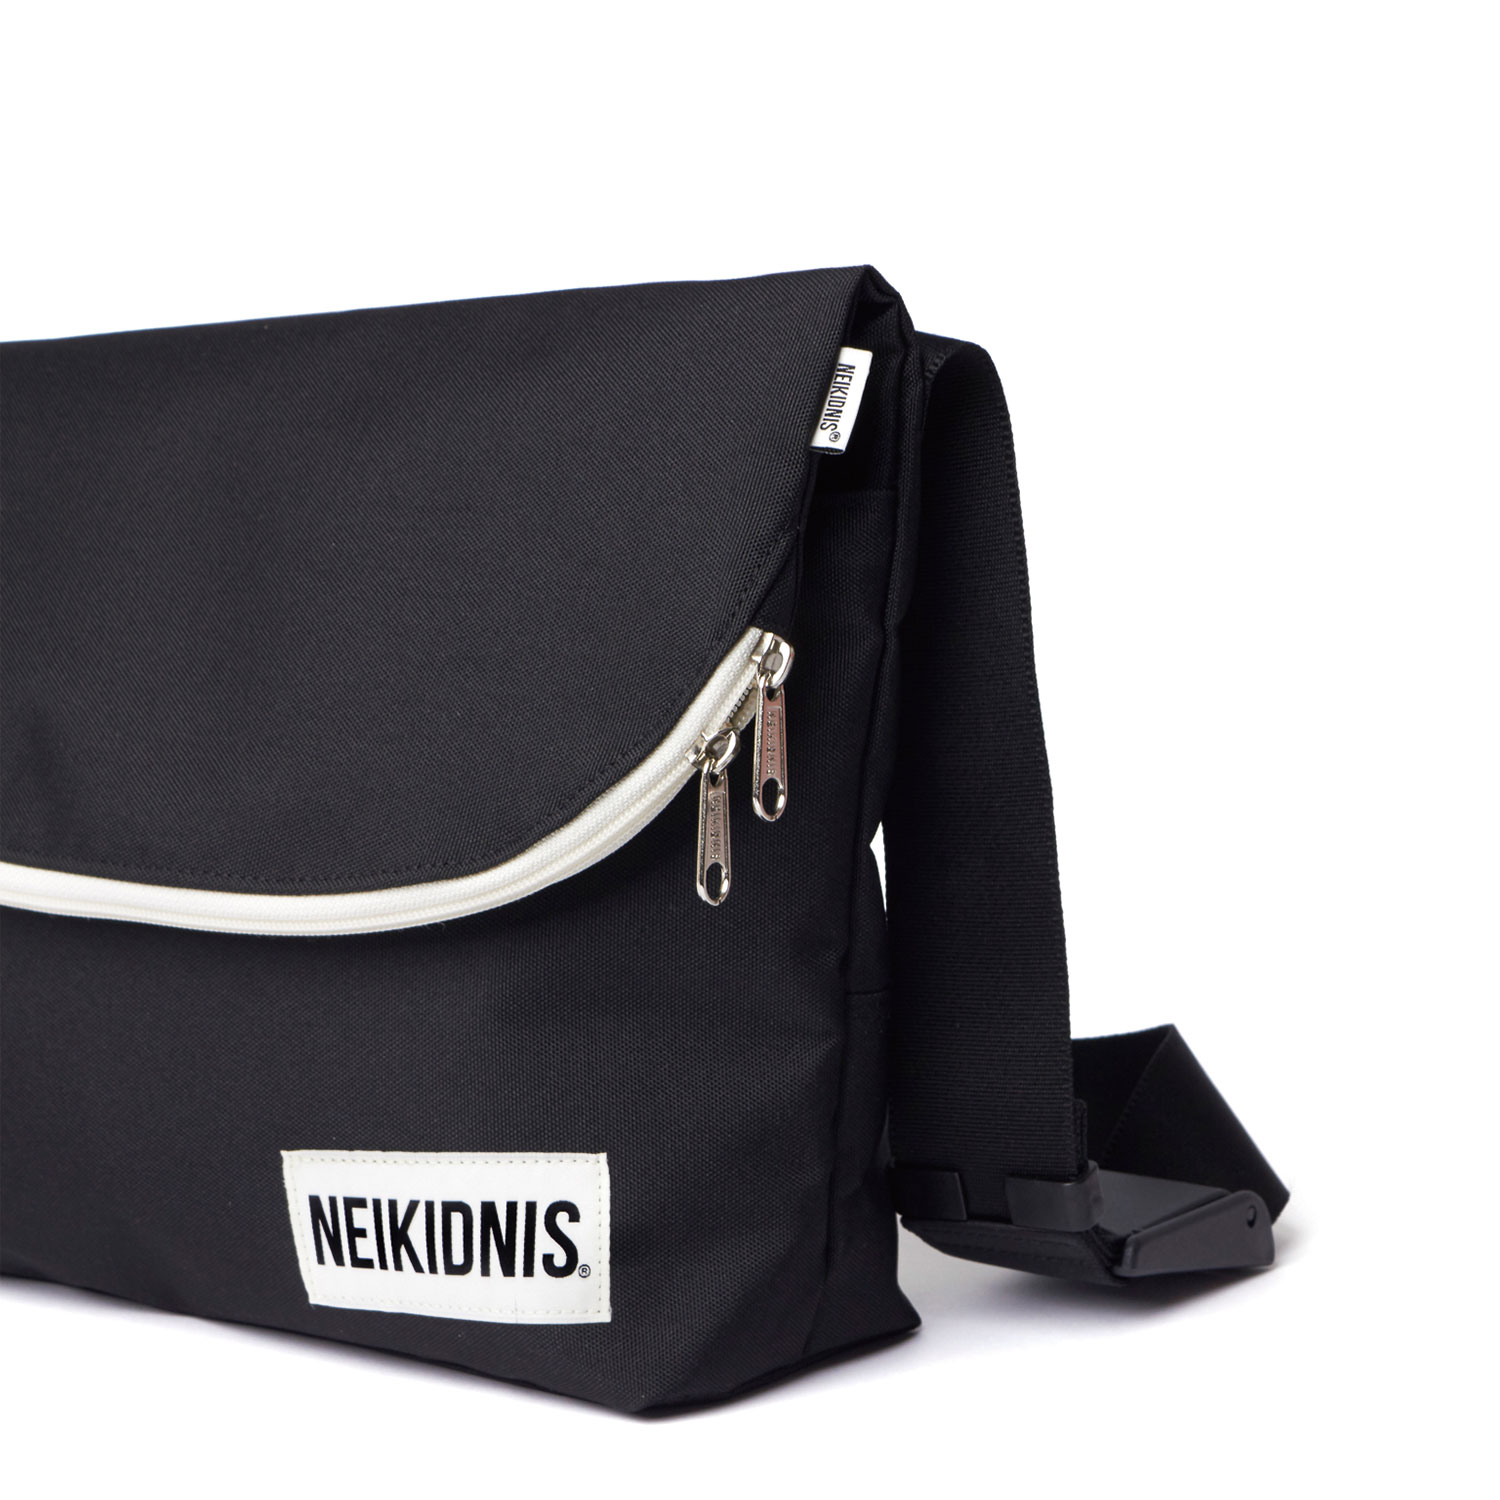 STANDARD MESSENGER BAG / BLACK